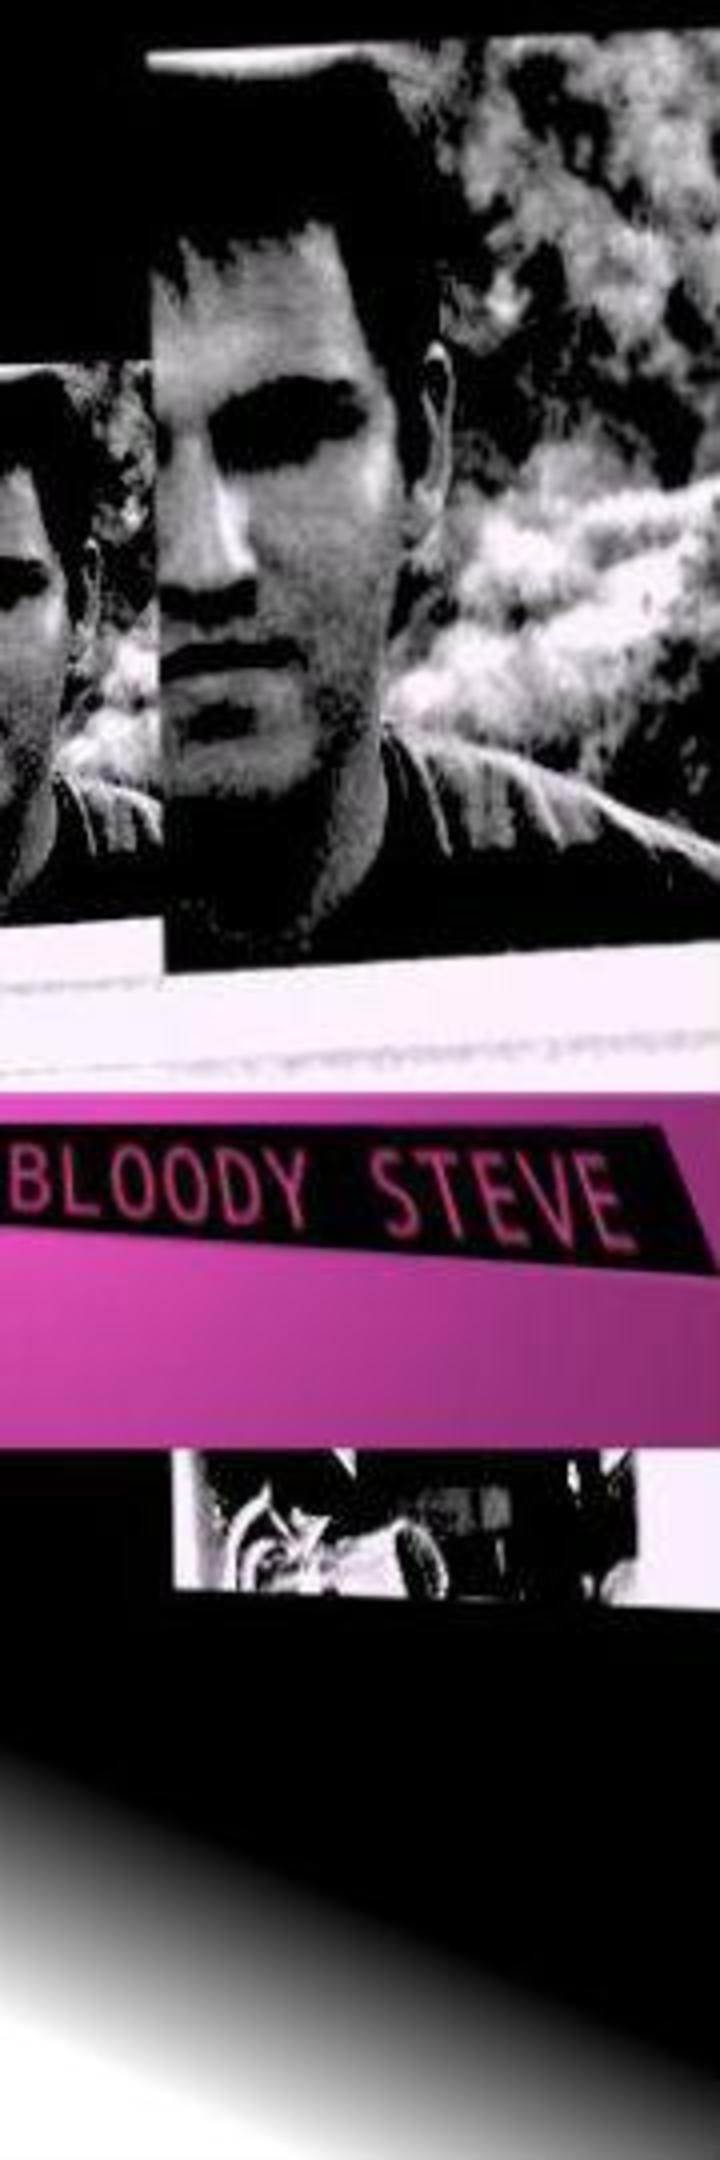 Bloody Steve Tour Dates